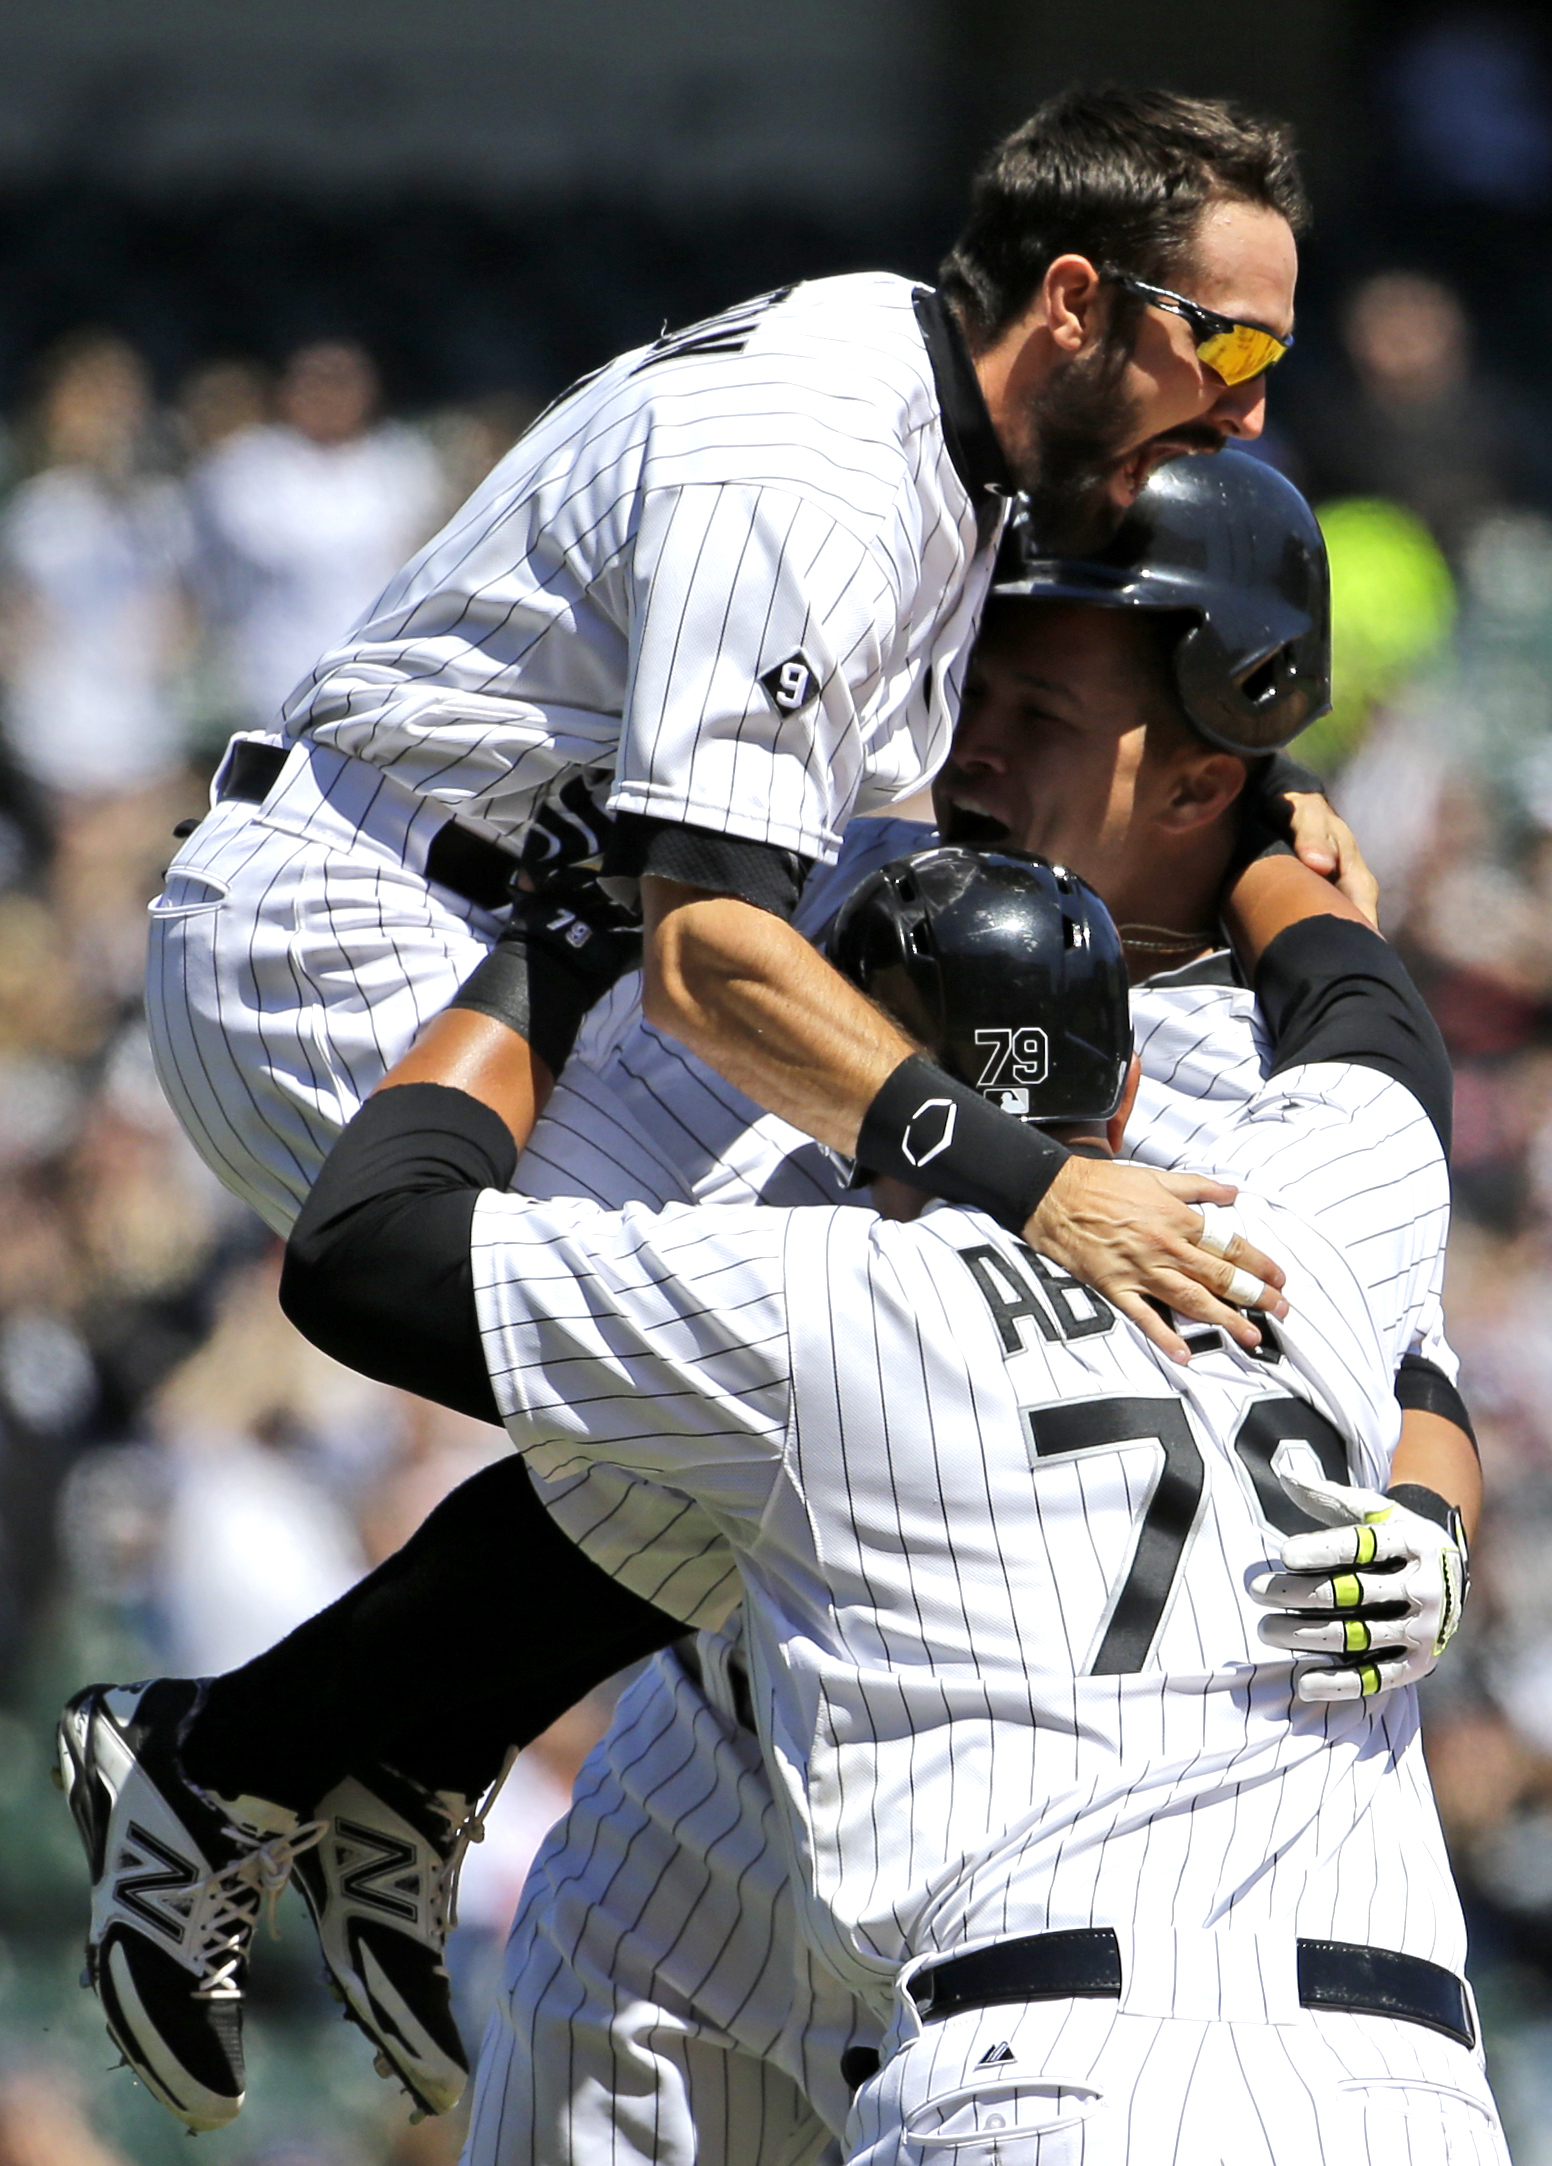 Chicago White Sox's Avisail Garcia, right, celebrates with Adam Eaton, top, and Jose Abreu, foreground, after hitting a game-winning single against the Kansas City Royals during the ninth inning of a continuation of a suspended baseball game from Friday i